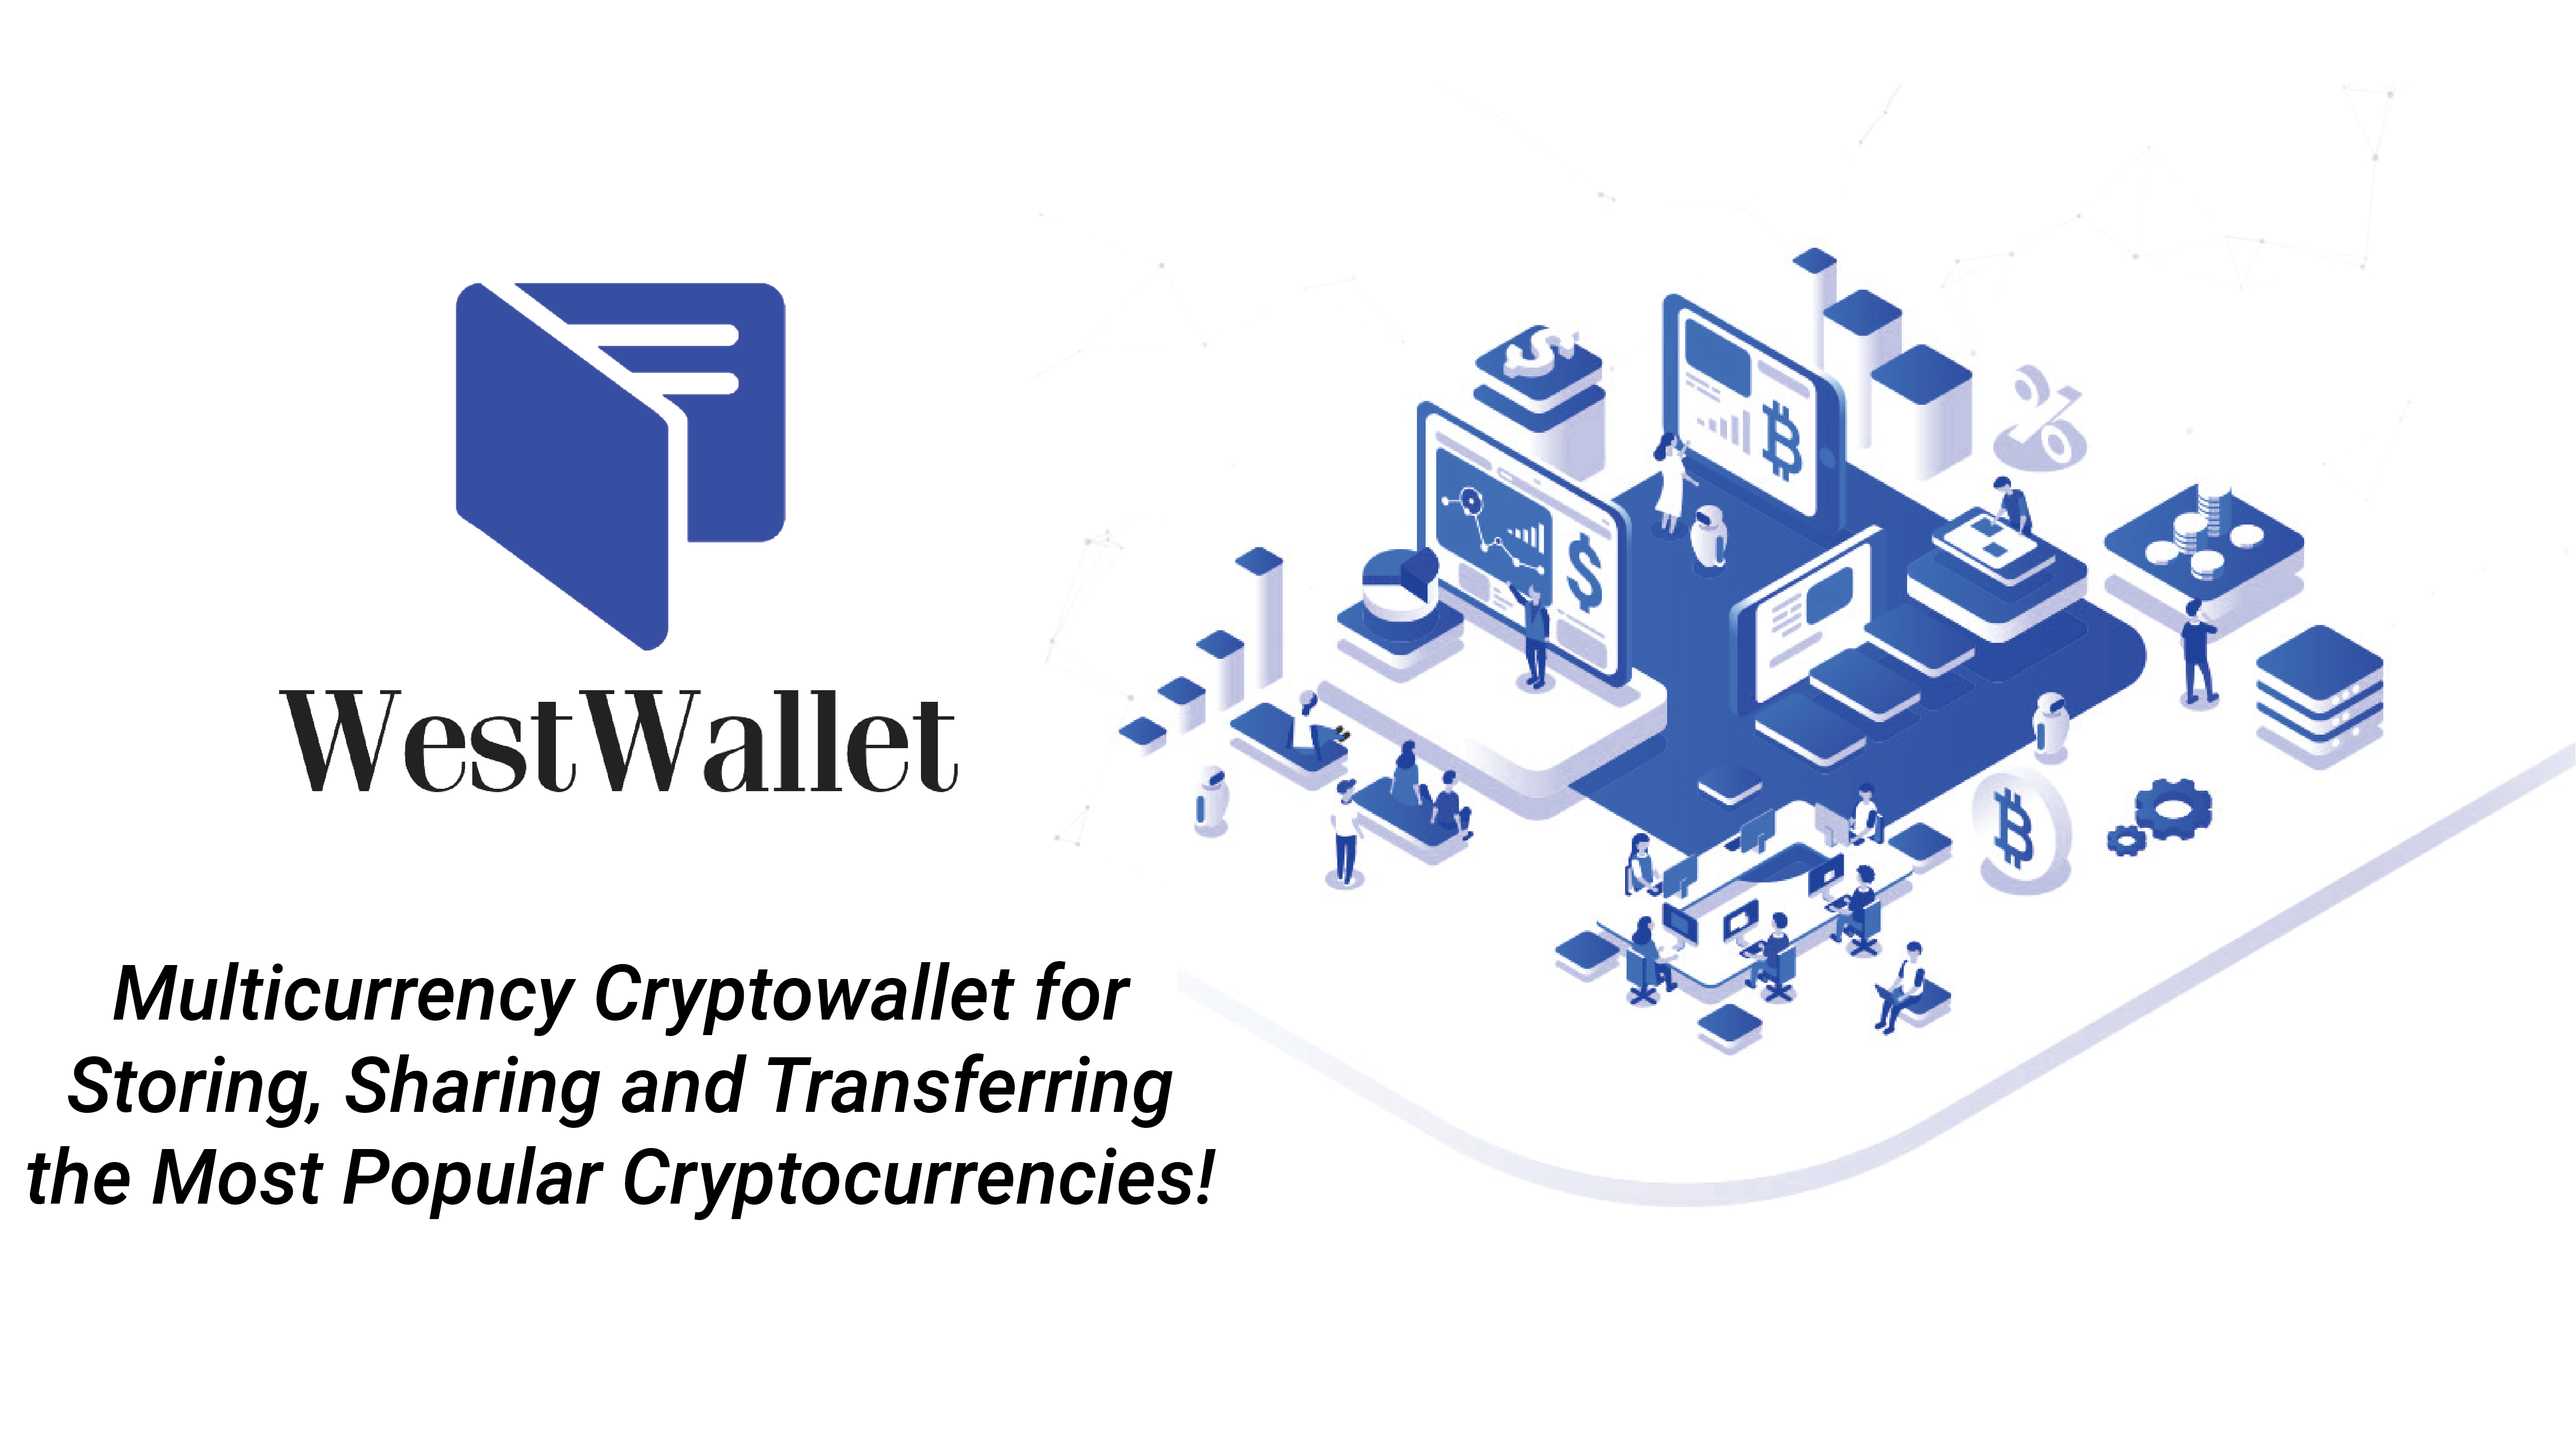 Multicurrency crypto wallet WestWallet, one-stop solution for securely storing and managing multiple cryptocurrencies